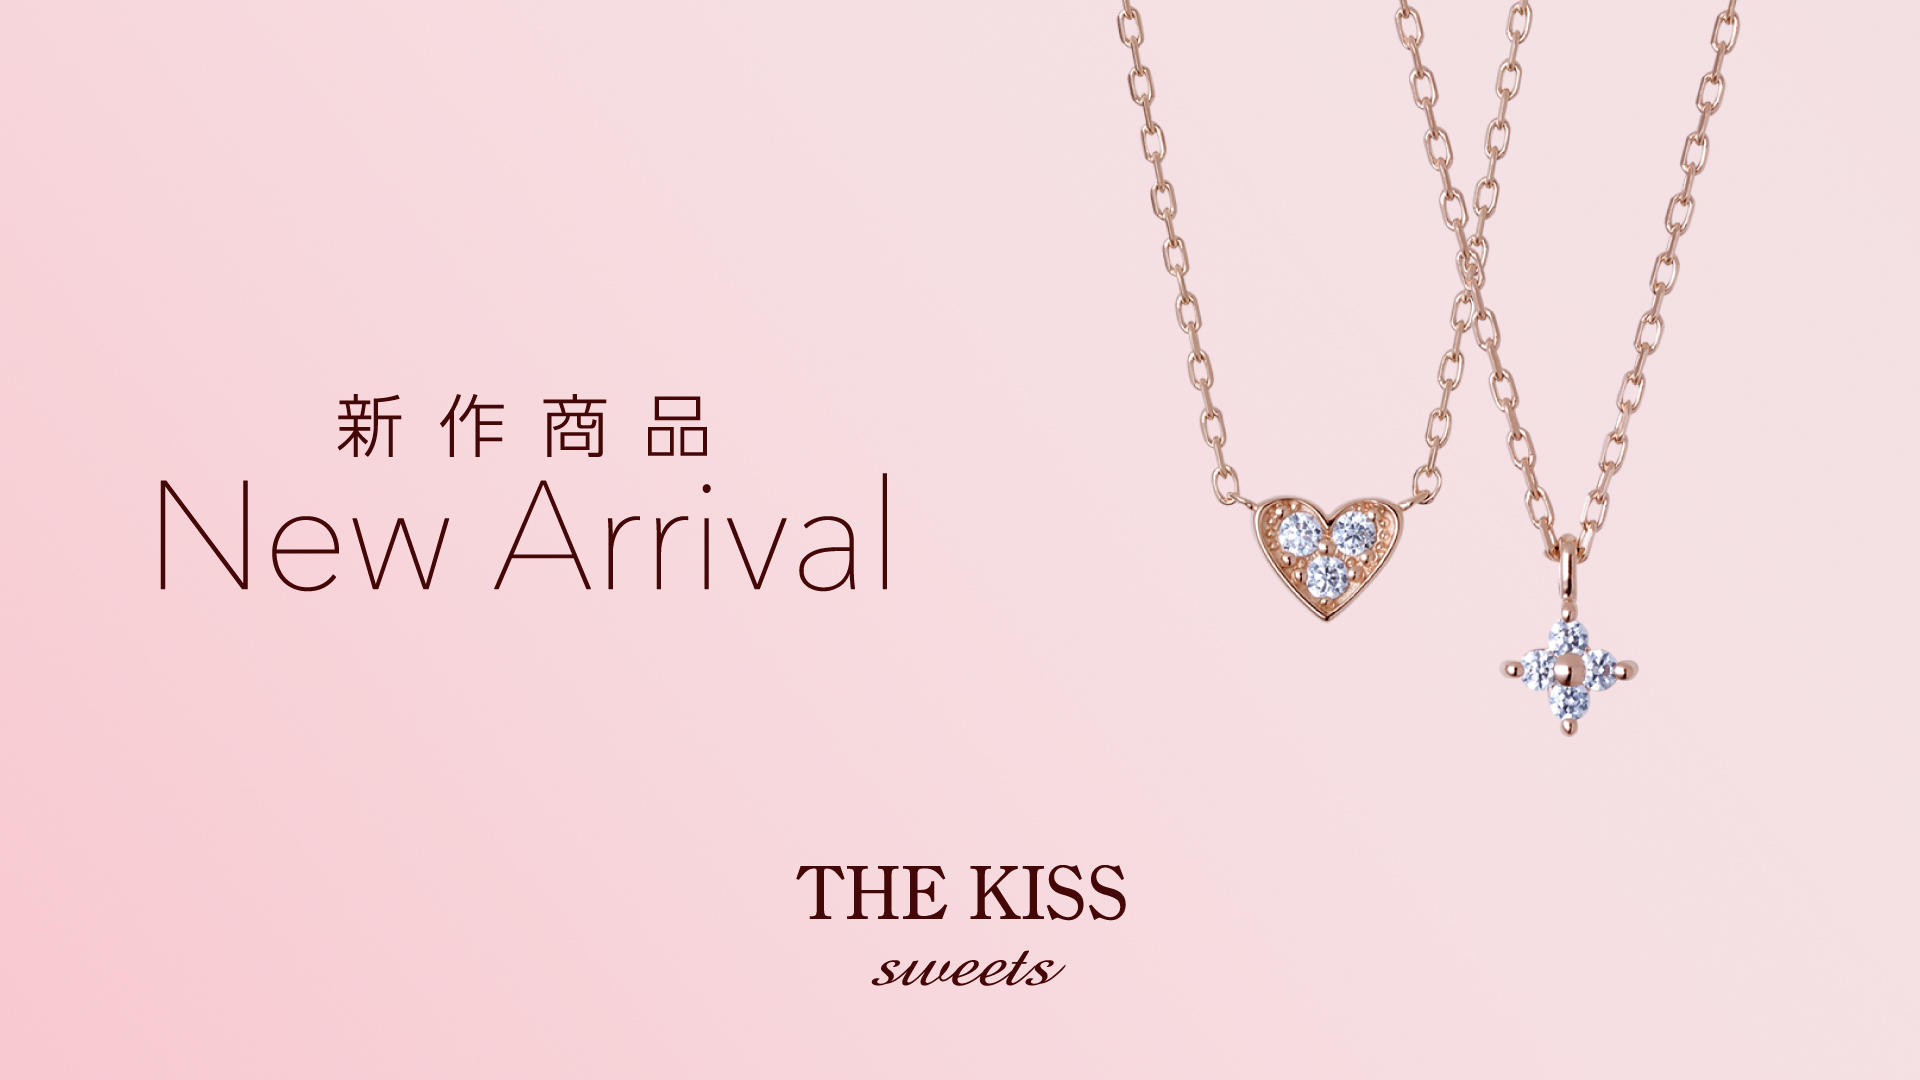 【THE KISS sweets】5月26日(土)新作レディースネックレス発売